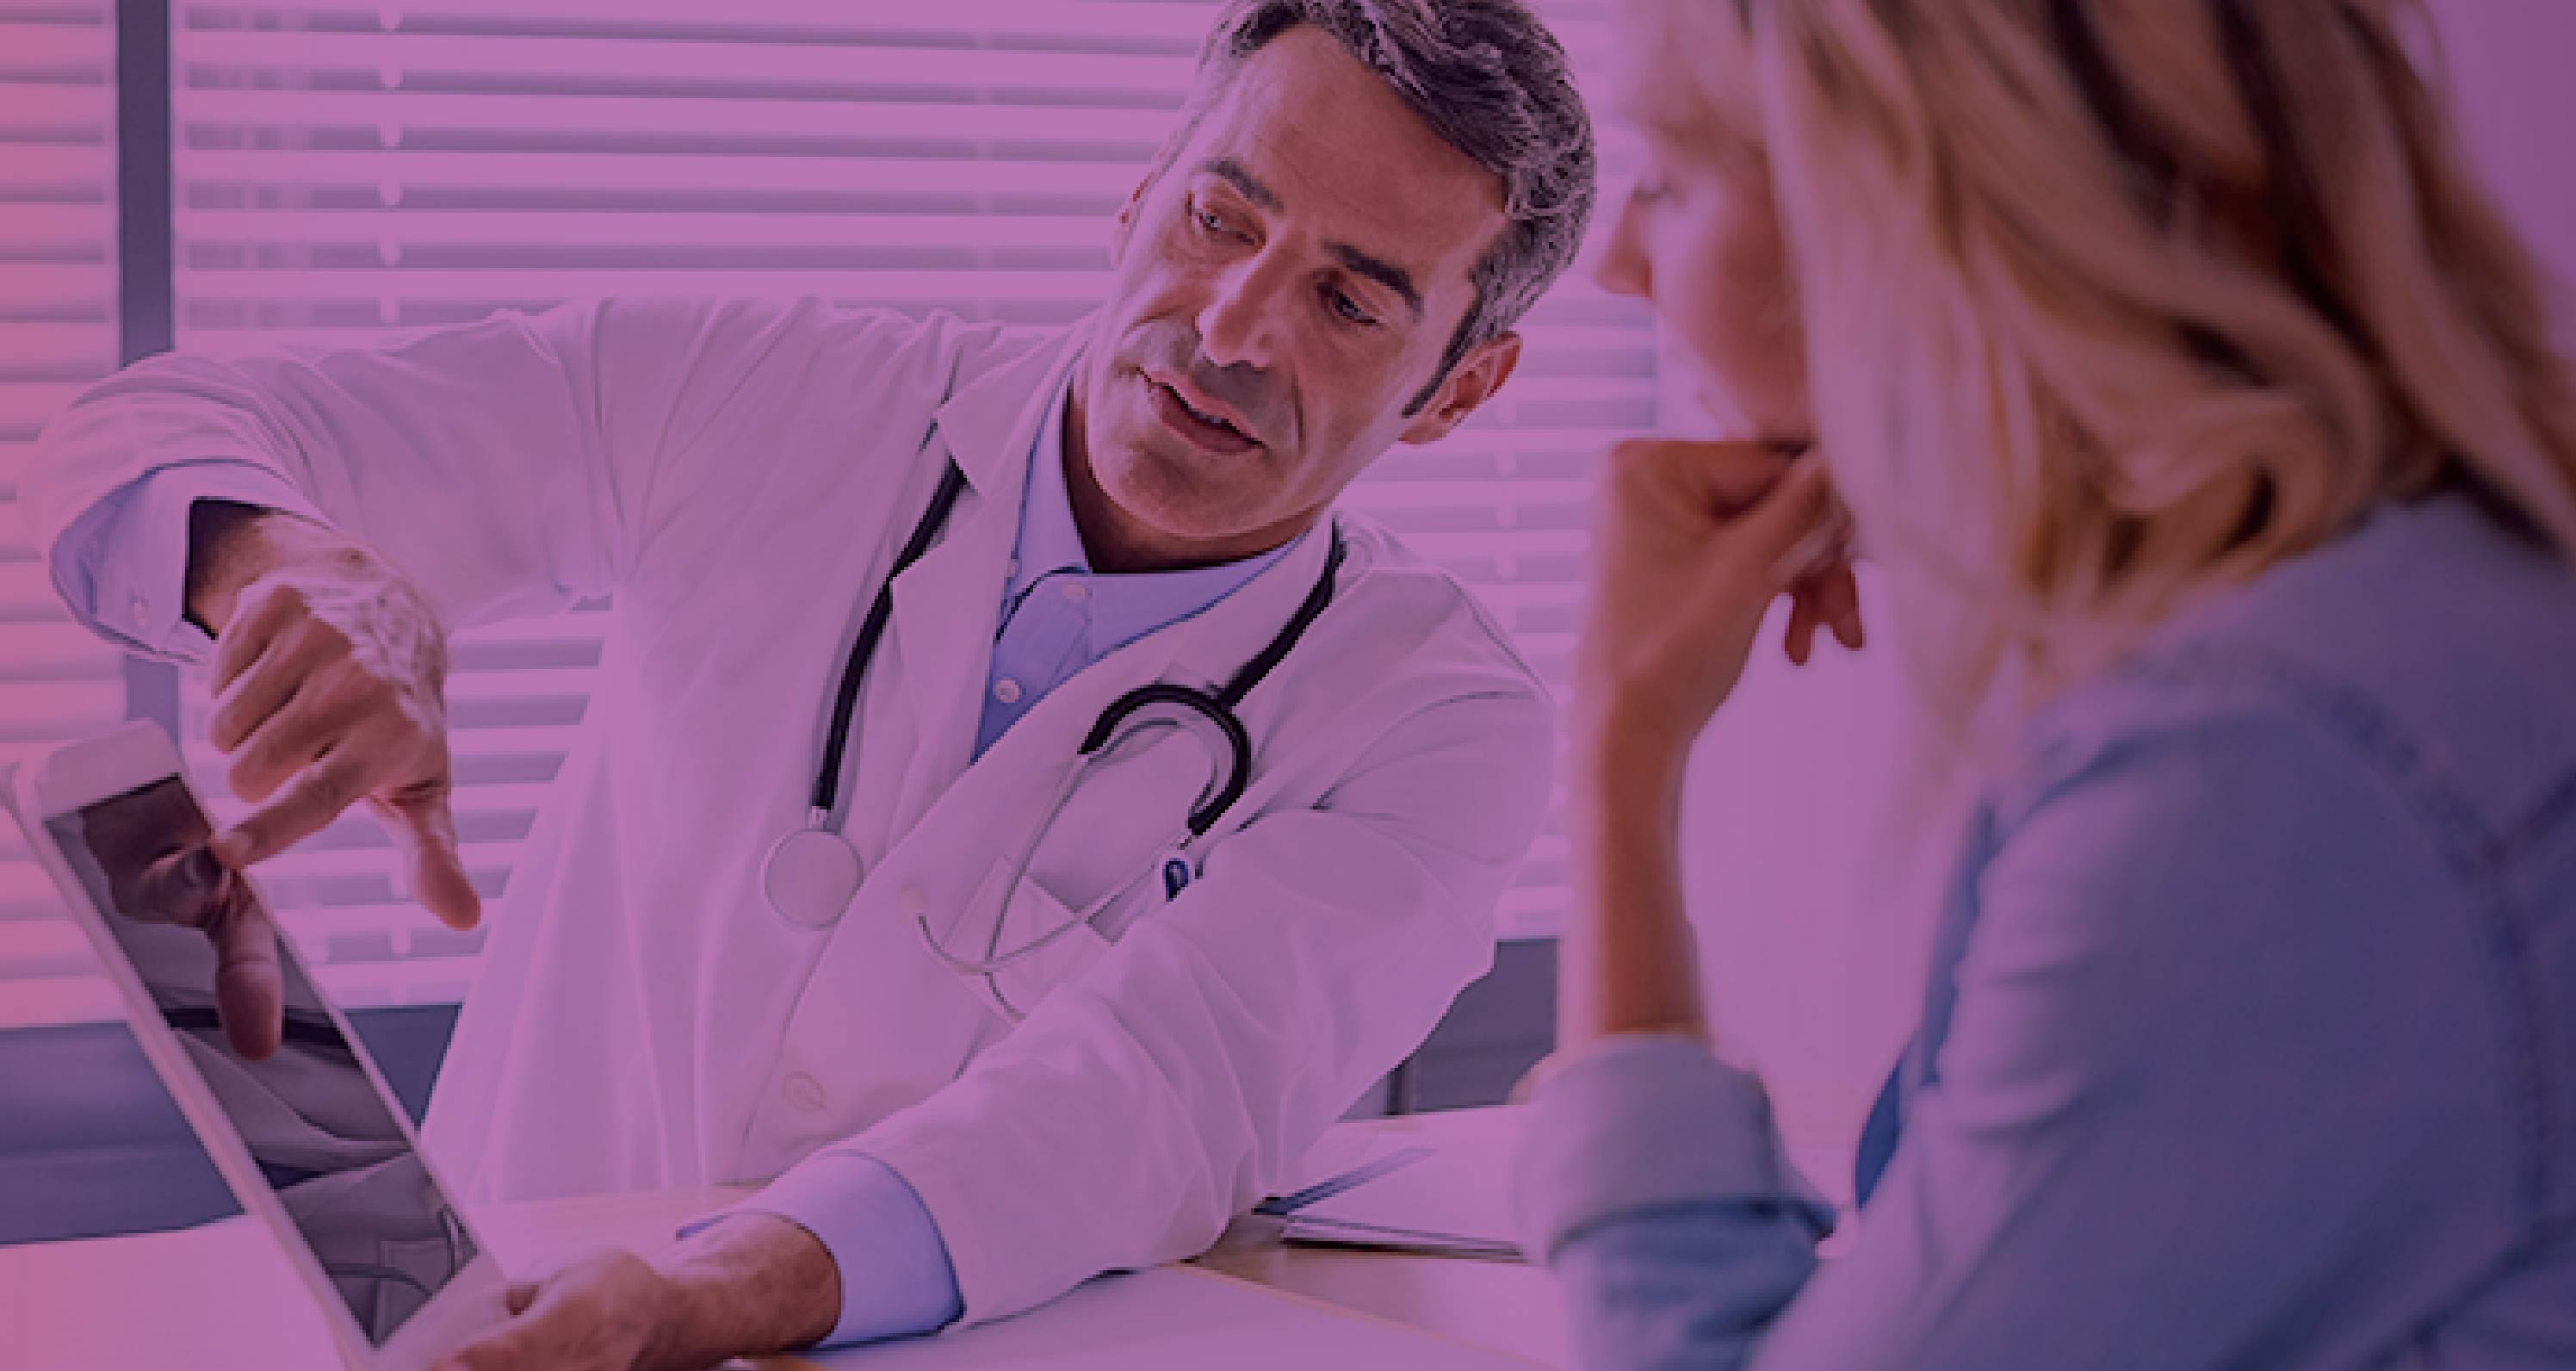 The Patient Voice: Overcoming the Challenges of Patient-Doctor Communication